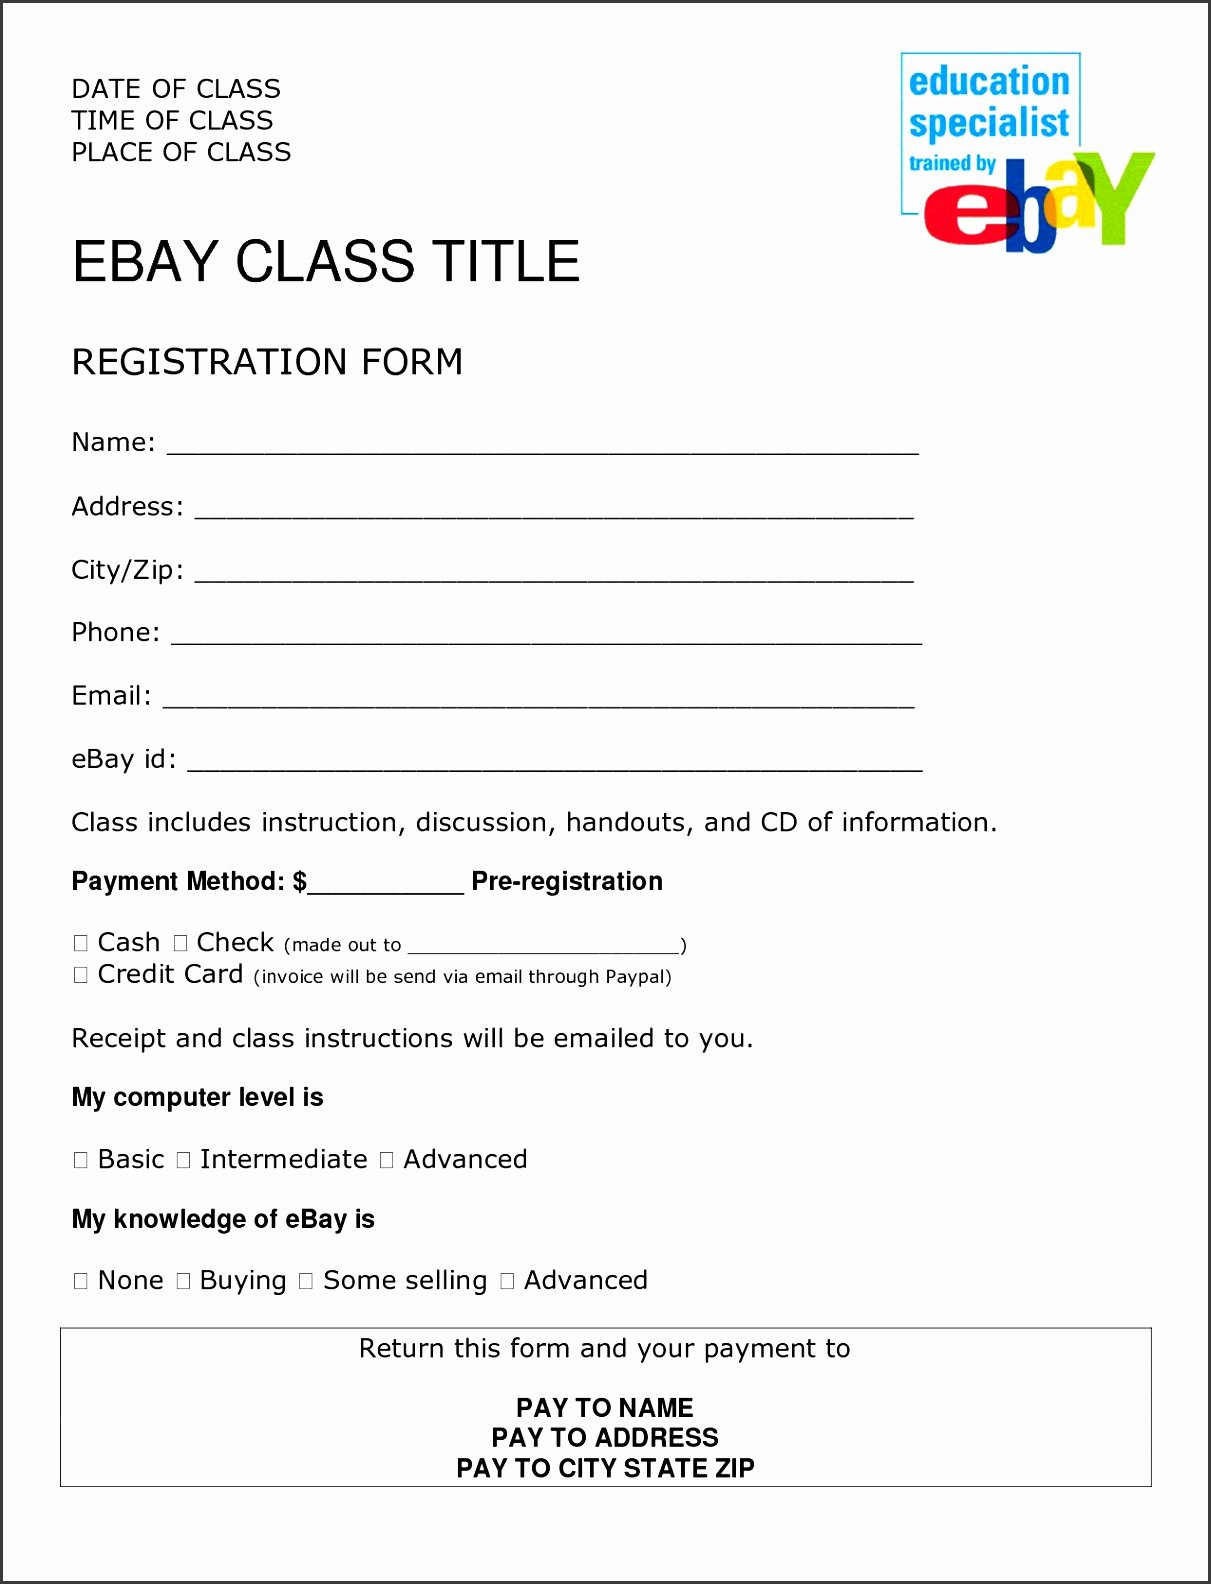 Registration form Template Microsoft Word Best Of 7 form Template Word Mac Sampletemplatess Sampletemplatess